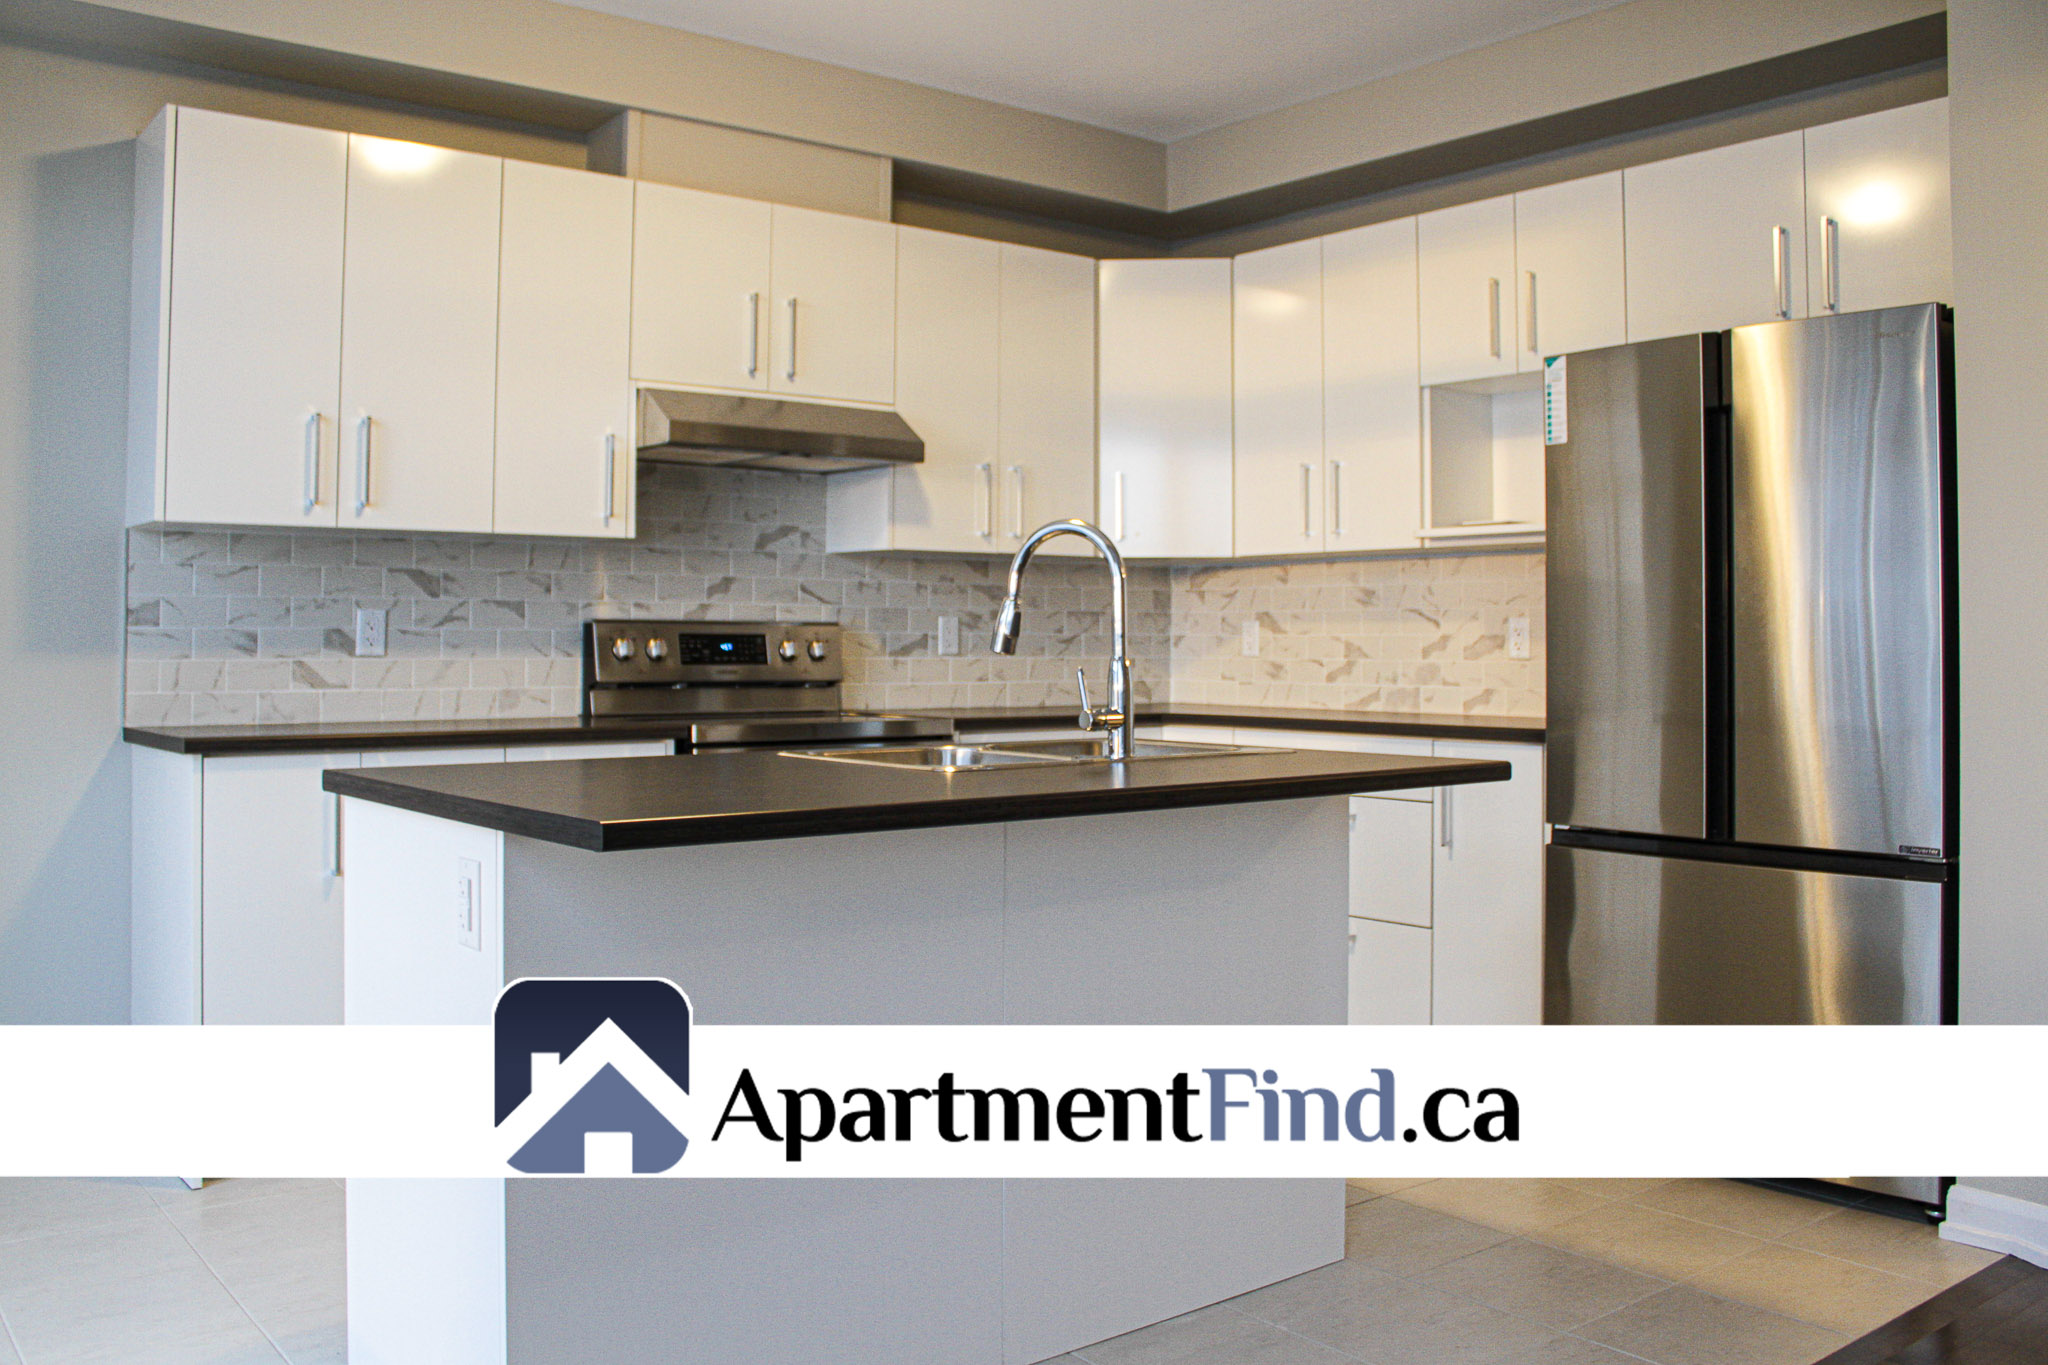 Kitchen of the house for rent in orleans at 649 Jerome Jodoin Drive